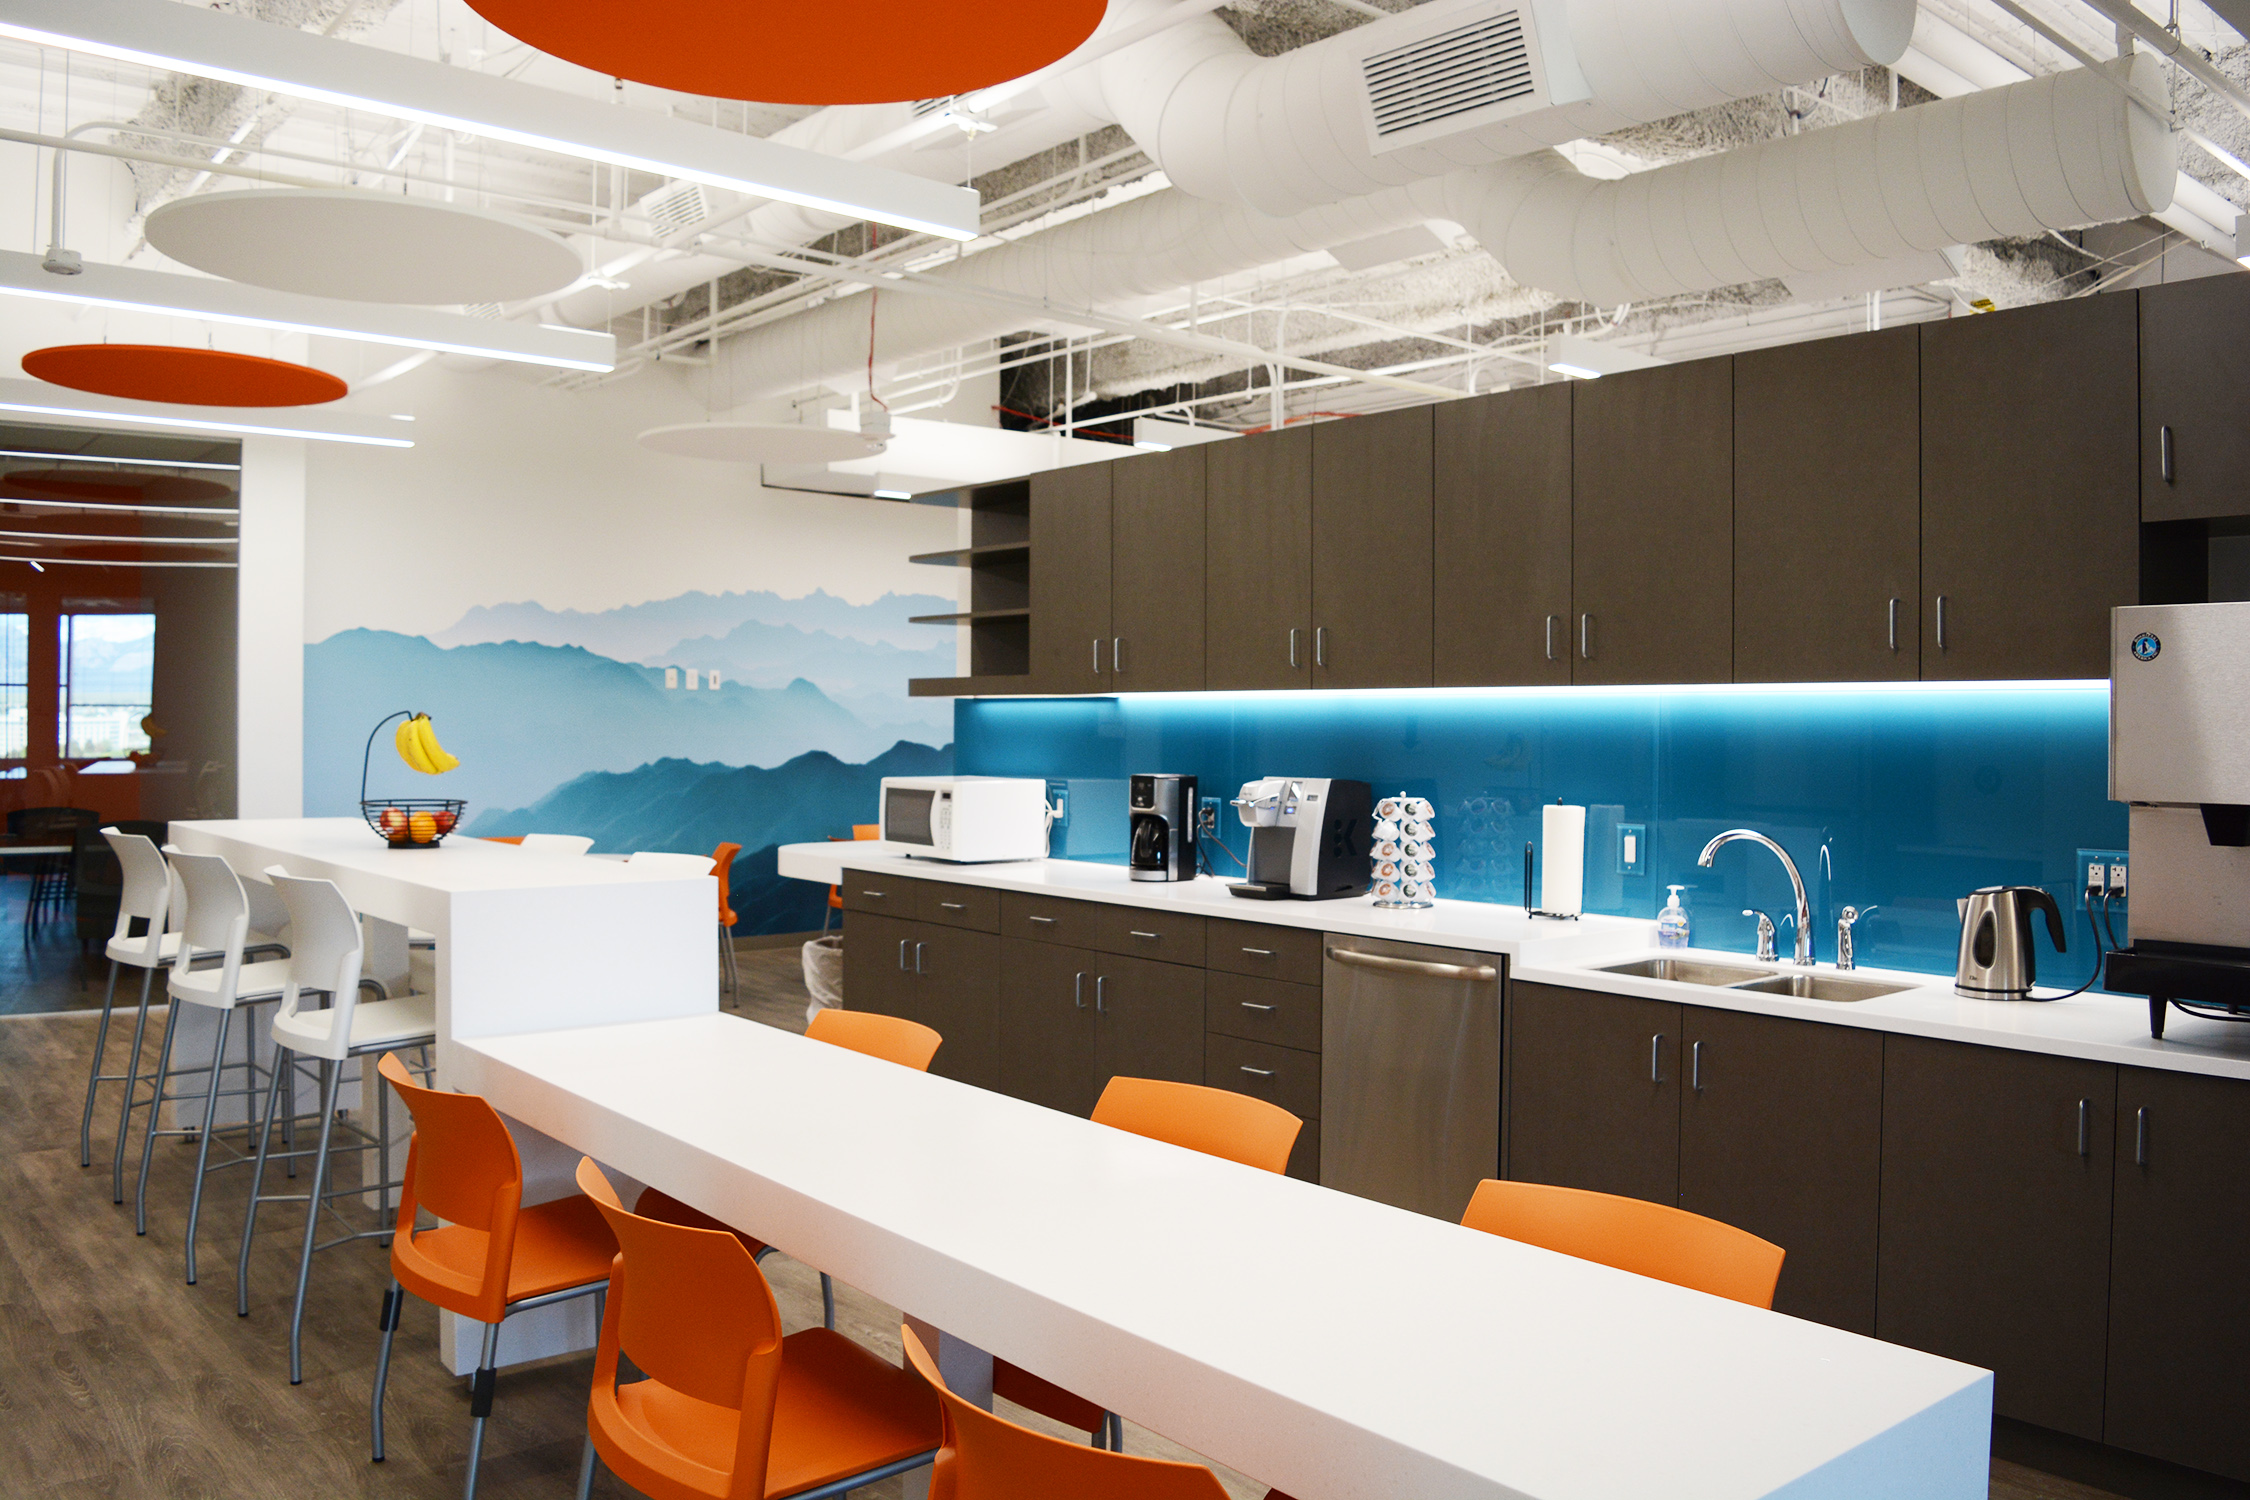 Employee attraction and retention, along with providing amenity driven spaces within the open office, were important factors in overall design. The break room ceiling was removed to create a large, bright and less corporate space. A dual-level  Corian  island was designed to be a place to grab a quick bite, have an informal meeting and provide space for catered meals. The back painted glass backsplash appears to glow from the undercabinet lighting and the white countertop adds a crisp delineation to the dark cabinets.